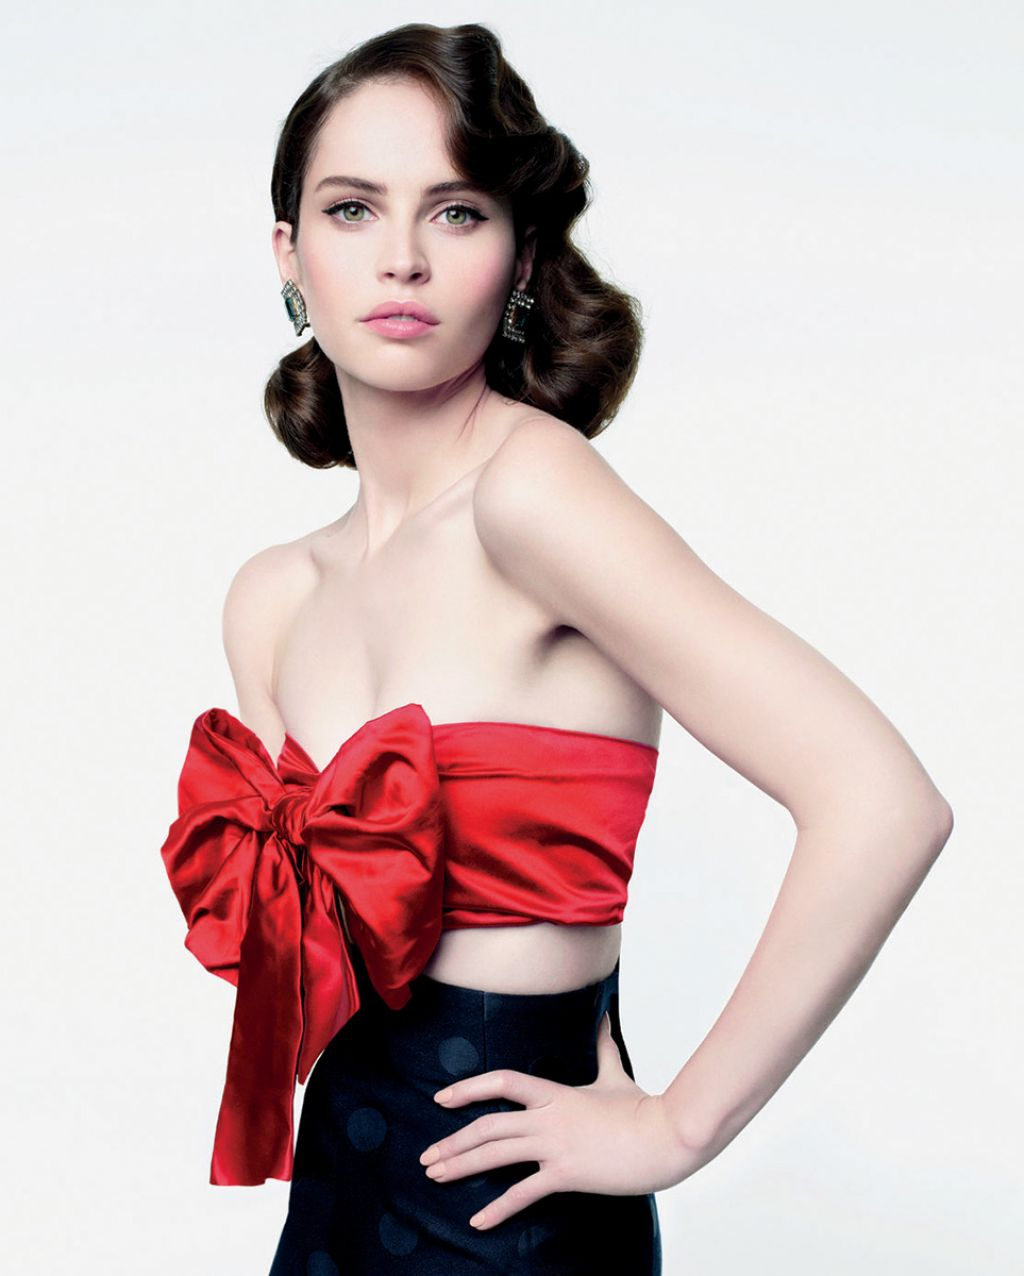 Felicity Jones - VANITY FAIR Magazine - January 2014 Issue